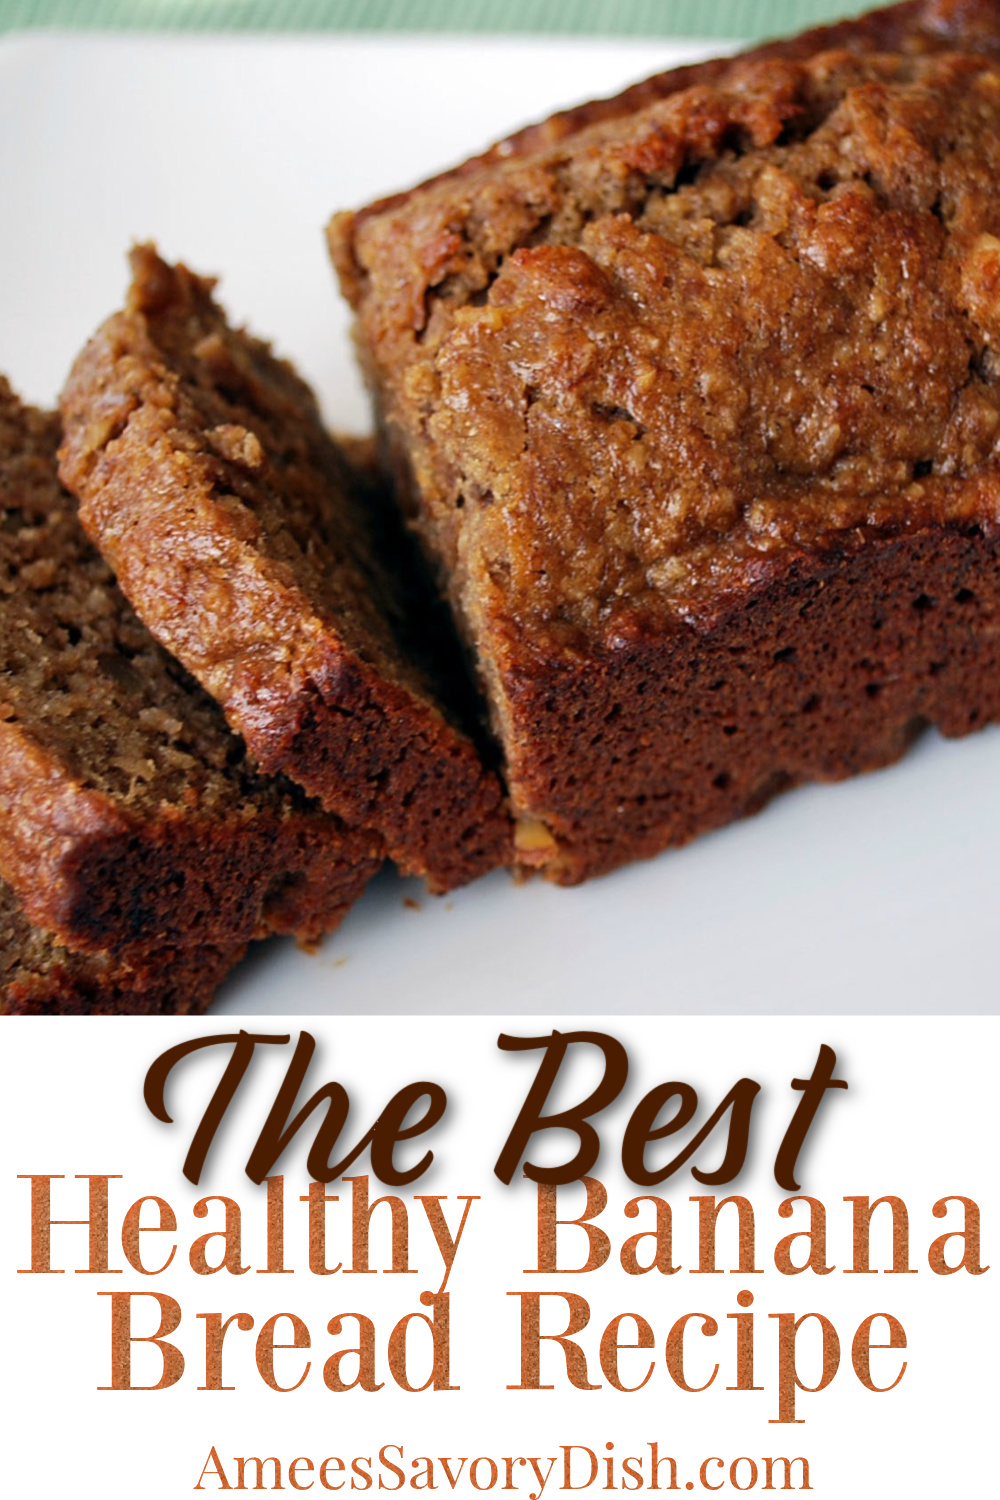 A healthier banana bread recipe that uses fruit puree, whole wheat flour, and coconut sugar and turns out moist and delicious! #healthybananabread #bananabread via @Ameessavorydish